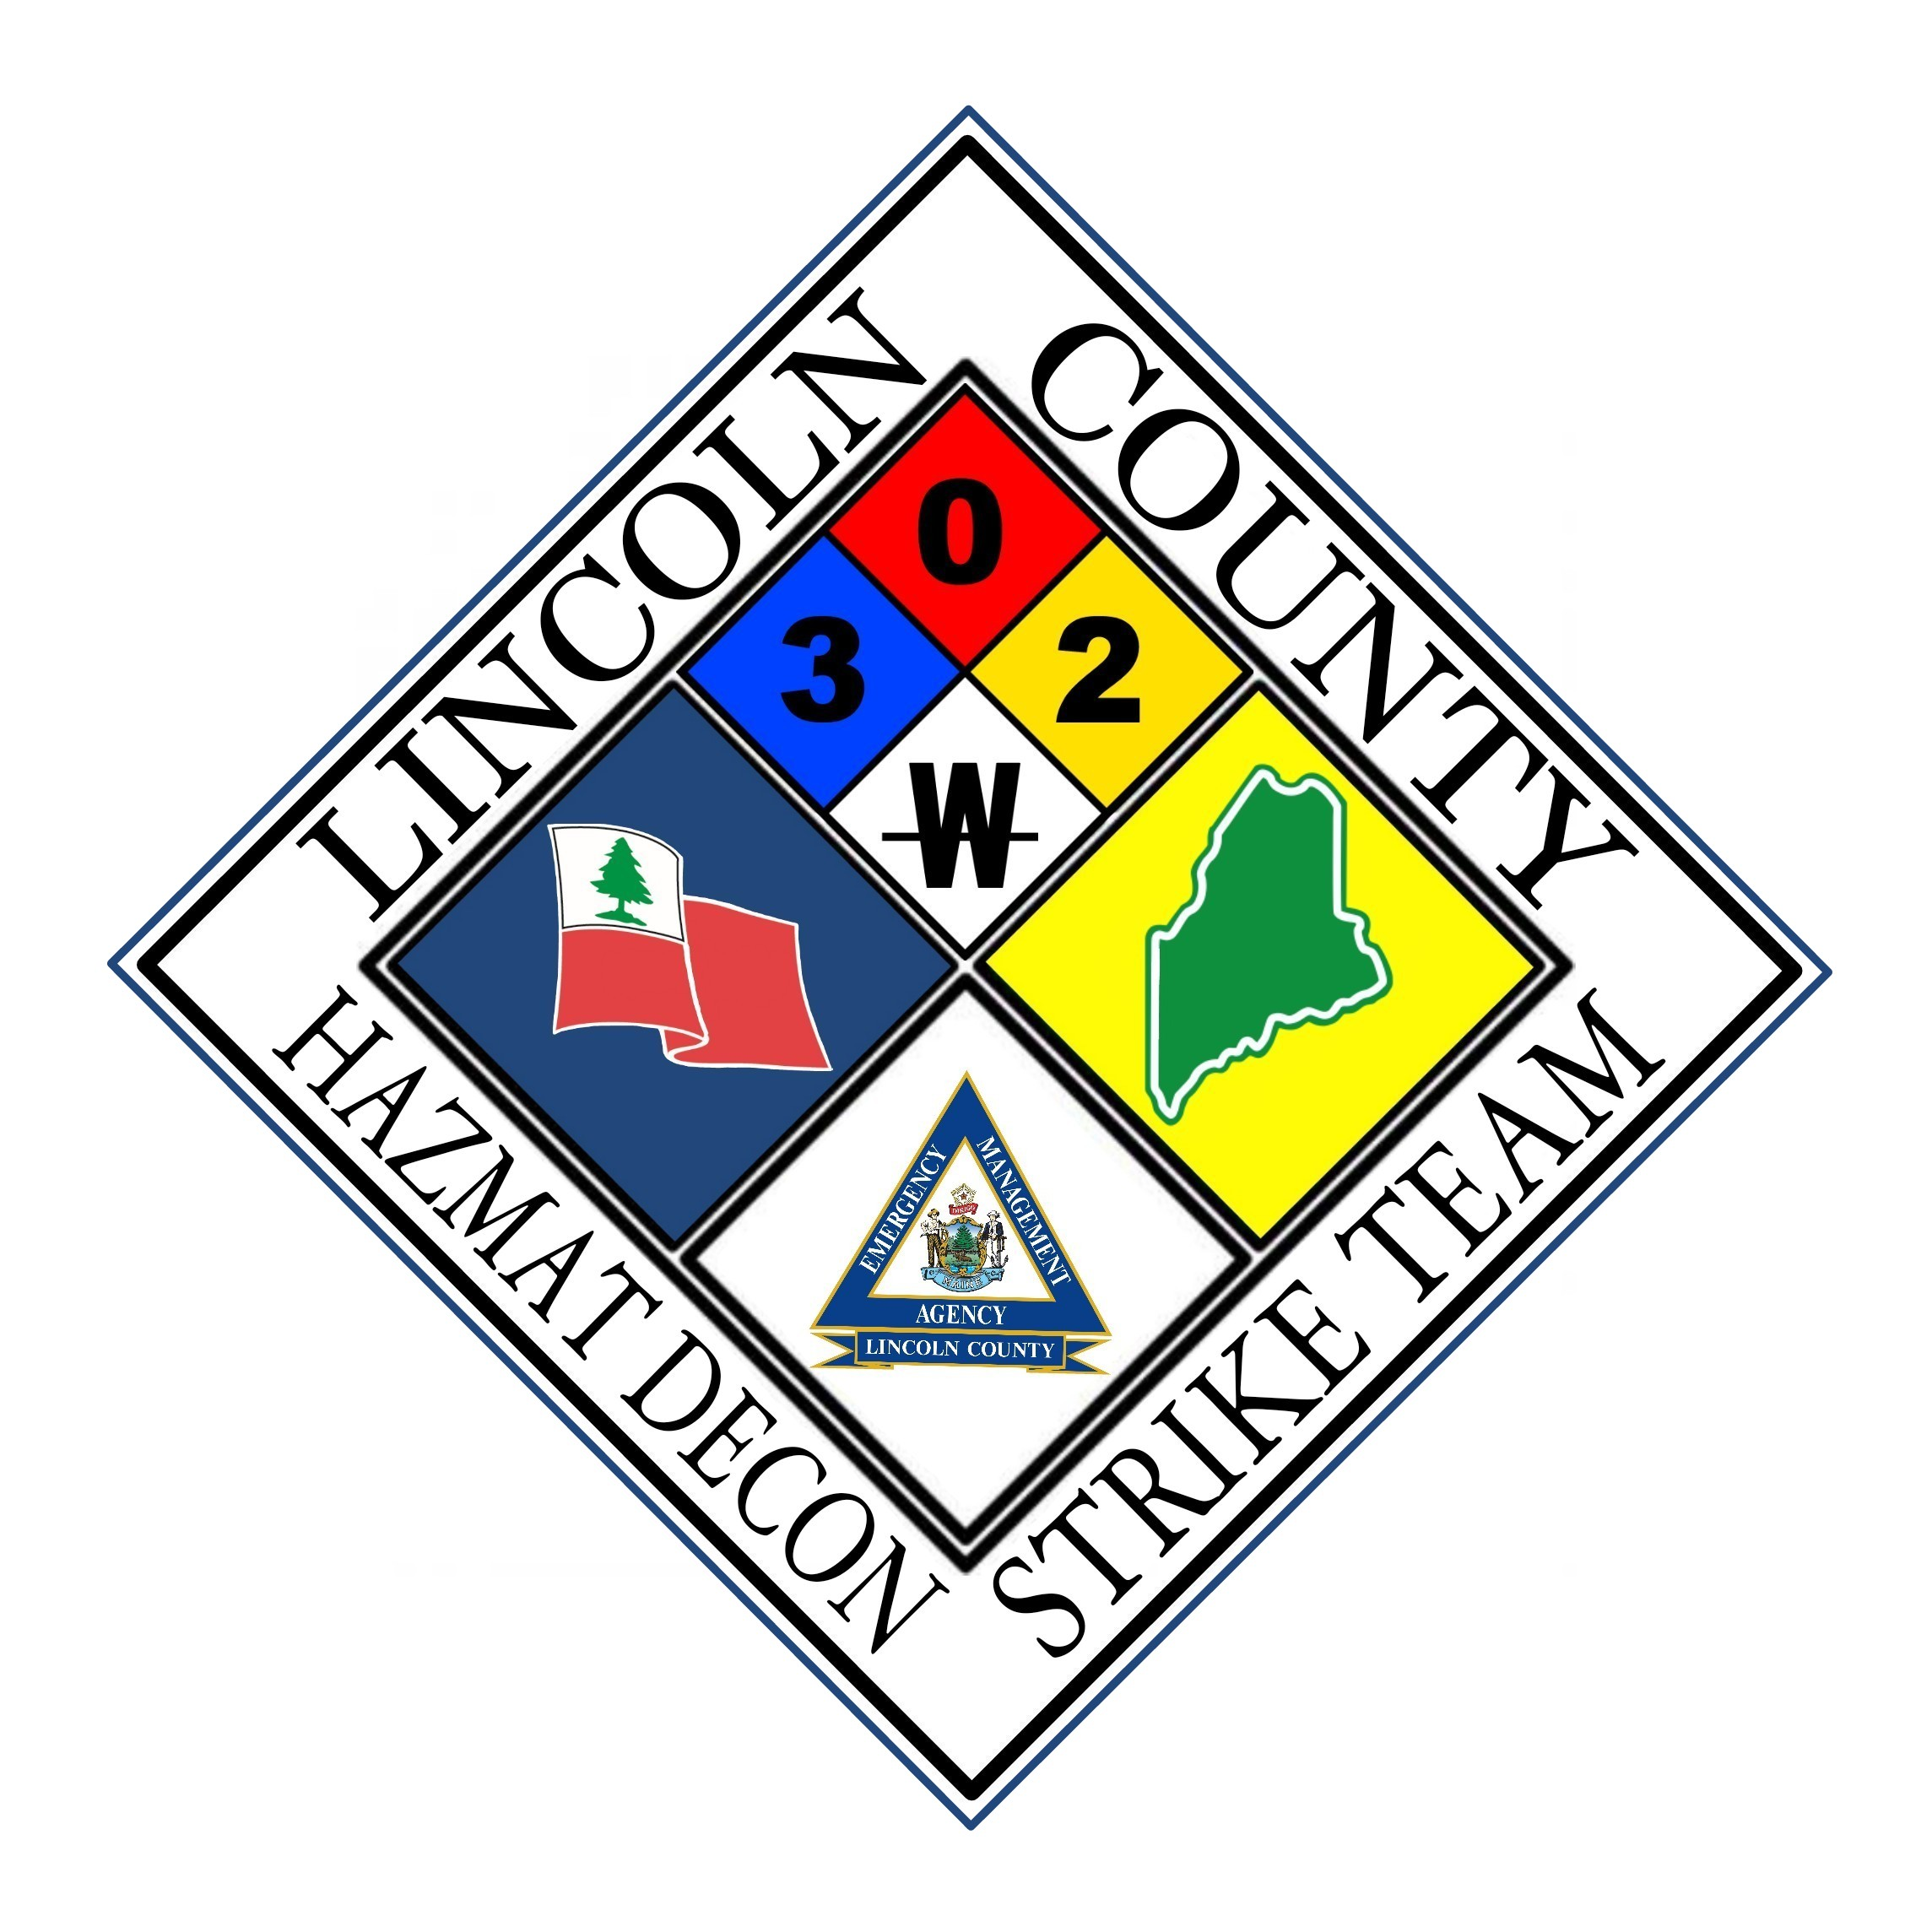 Lincoln County Hazmat Patch 06.2017